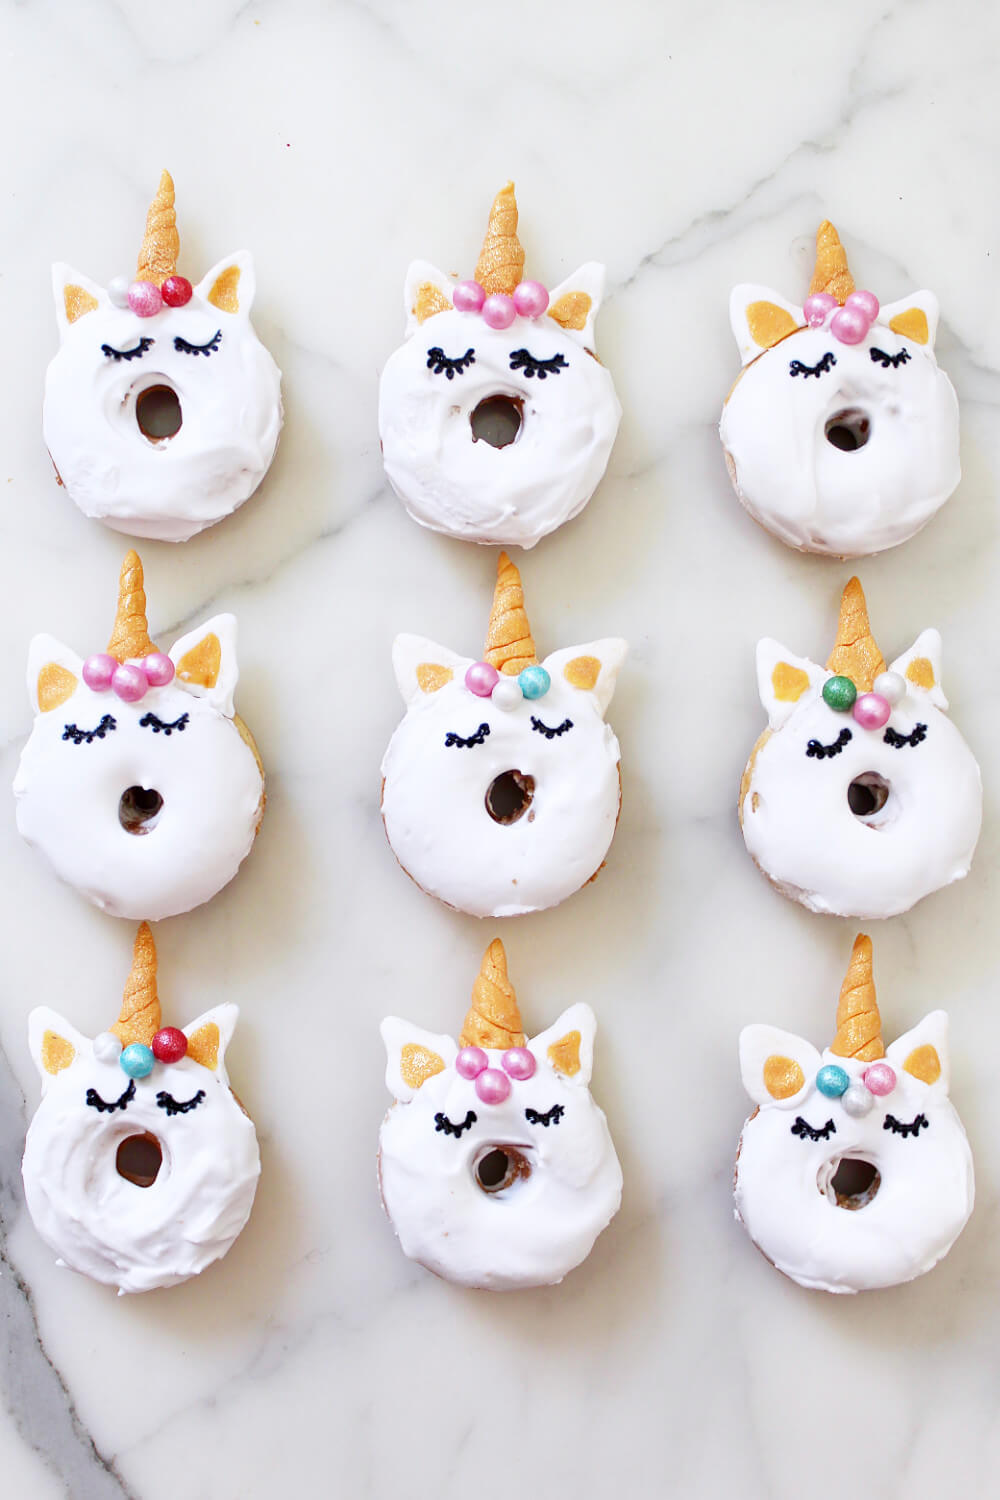 DIY-Mini-Donuts-backen-Rezept-Einhorn-Unicorn-DIY-Blog-9